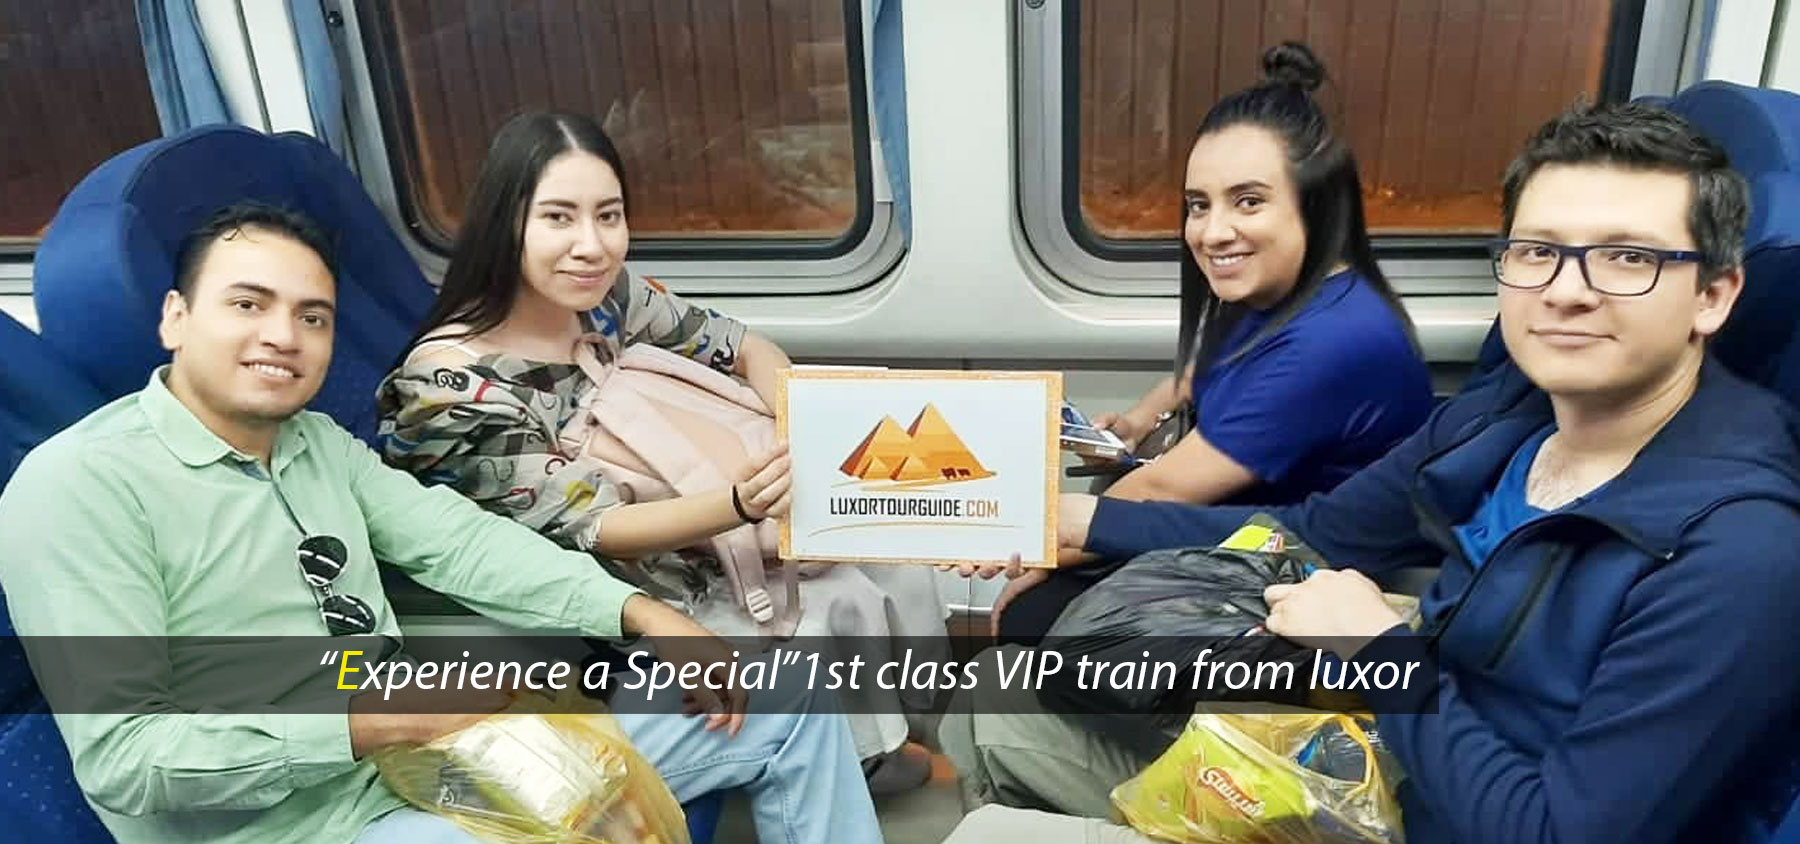 VIP train from luxor